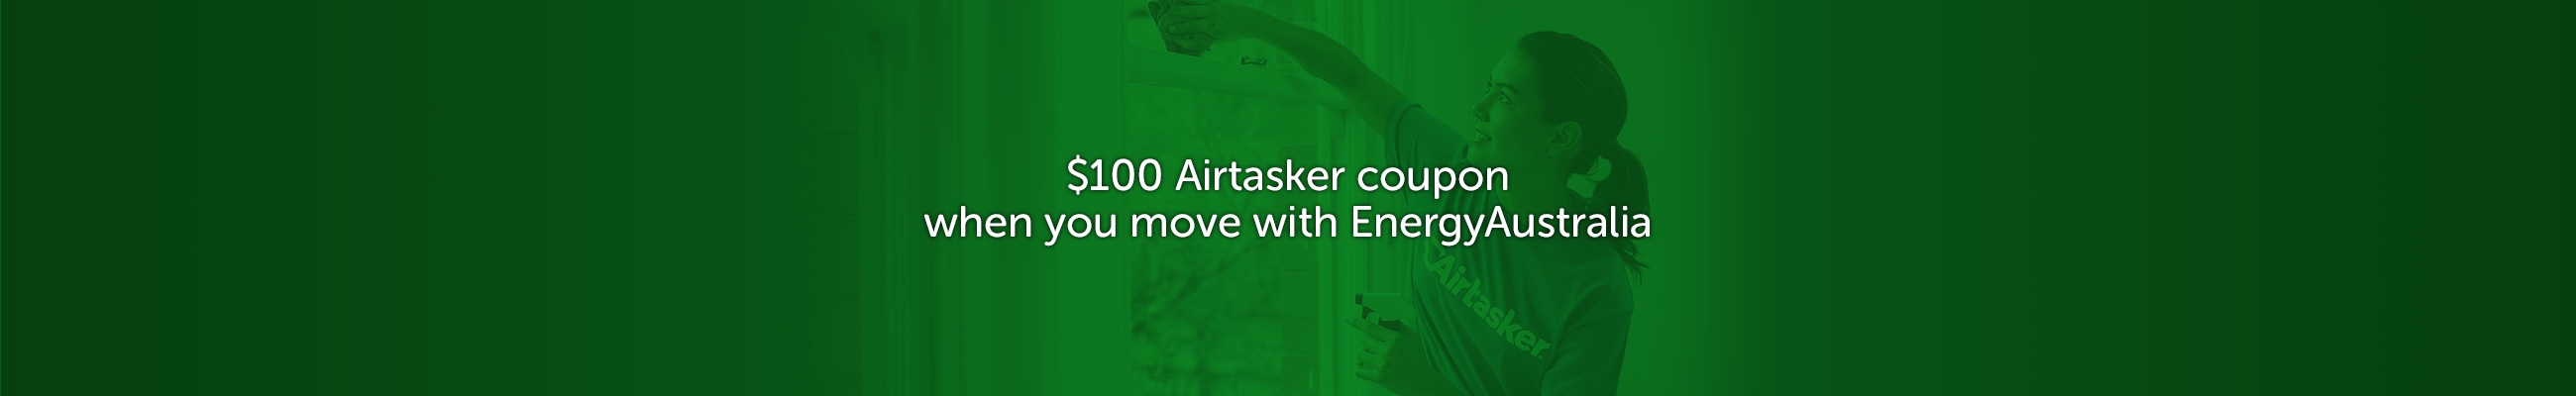 $100 Airtasker coupon when you move with EnergyAustralia